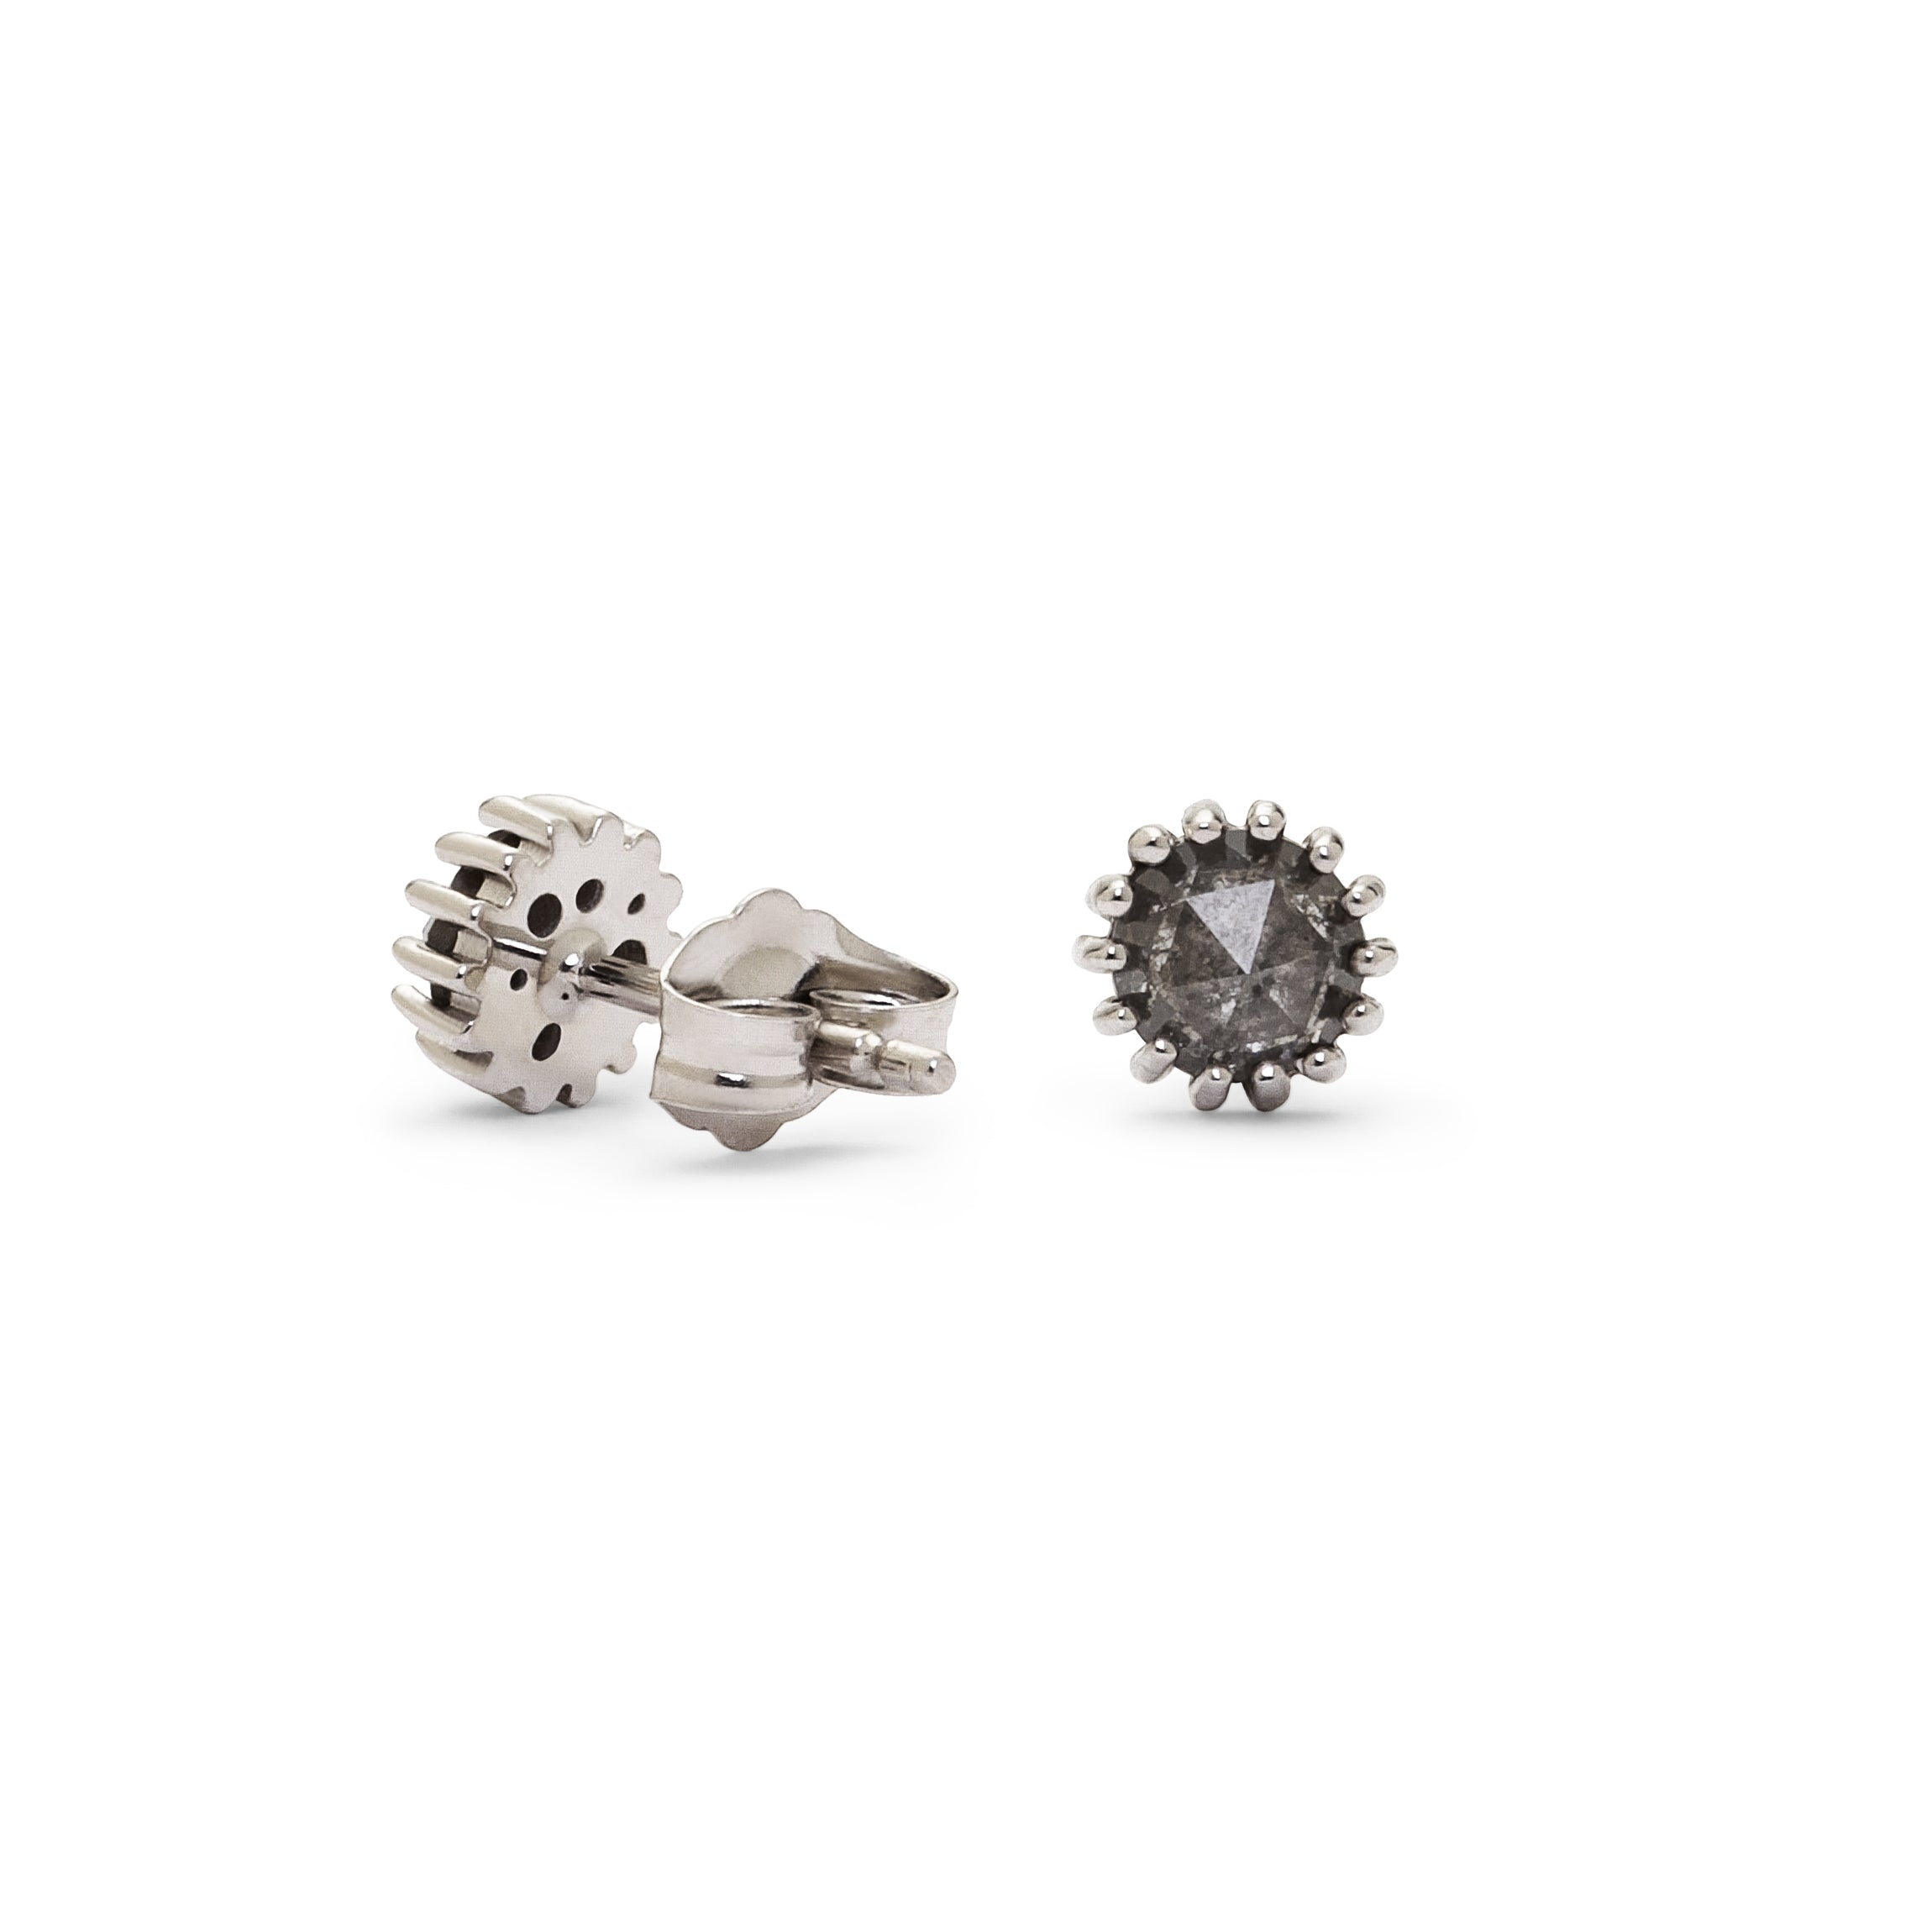 danabronfman products earring diamond rose ak medium pyramidal stud natural grey earrings cut jewellery black studs